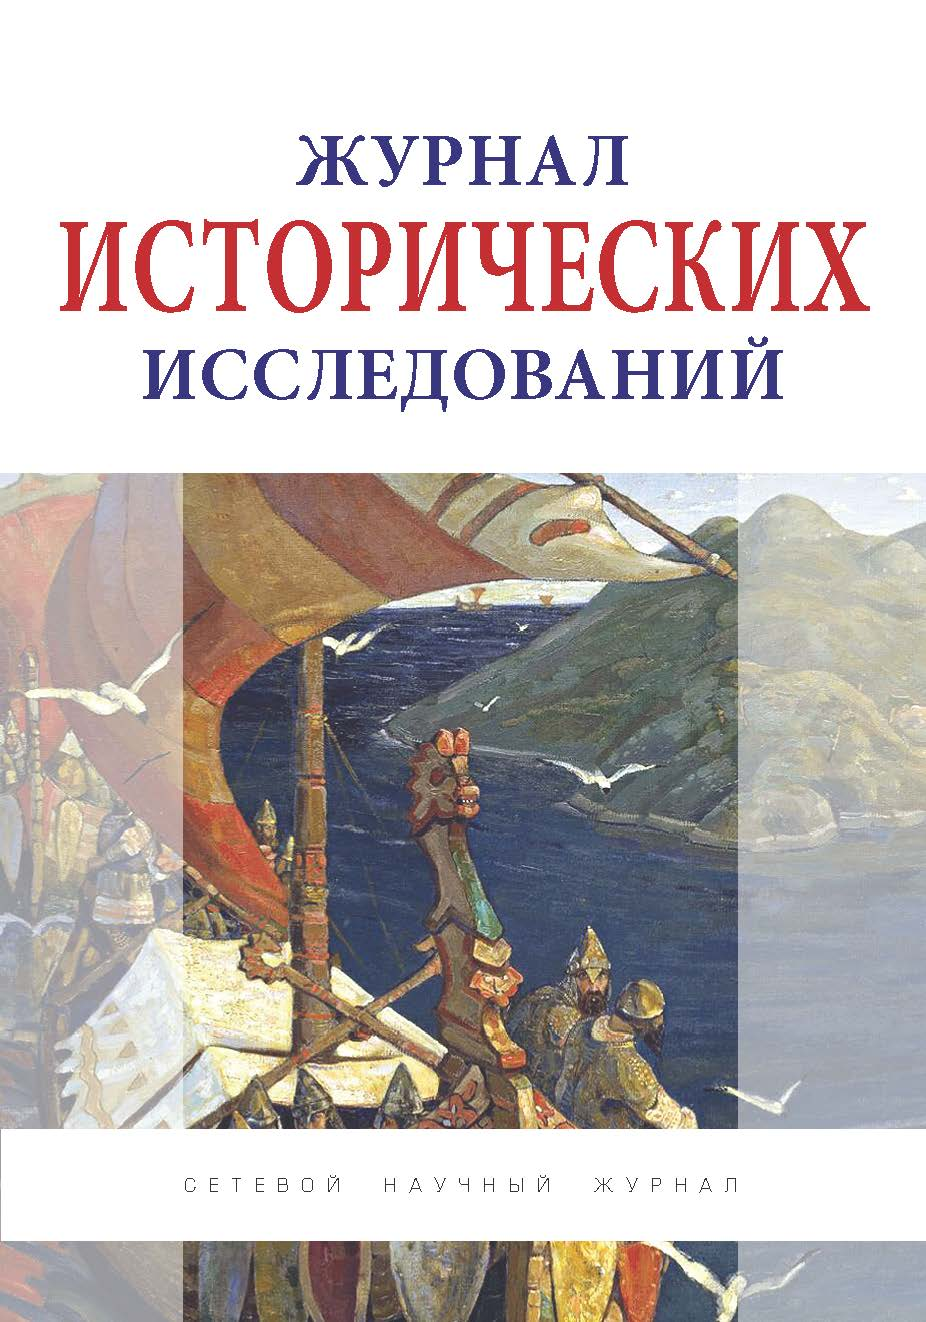 Interest in the ancient Russian traditions in Russian culture in XIX-XX centuries